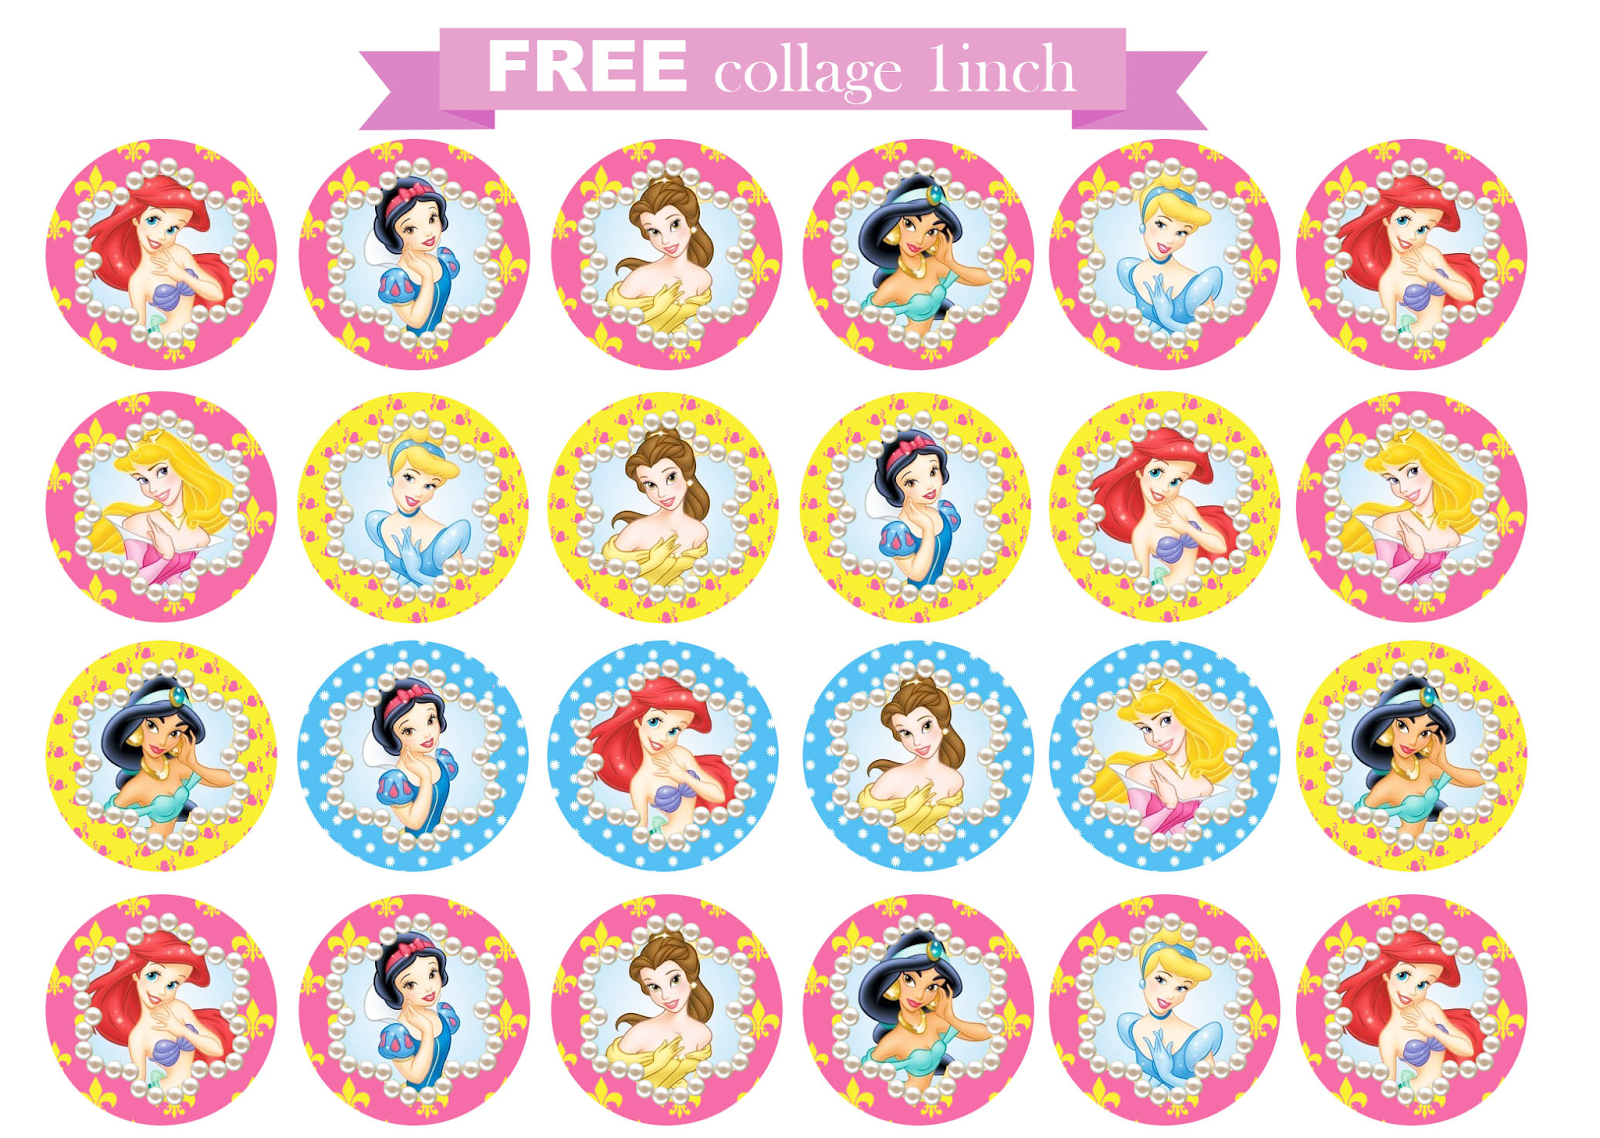 free printable invitation: Disney Princess FREE collage ...